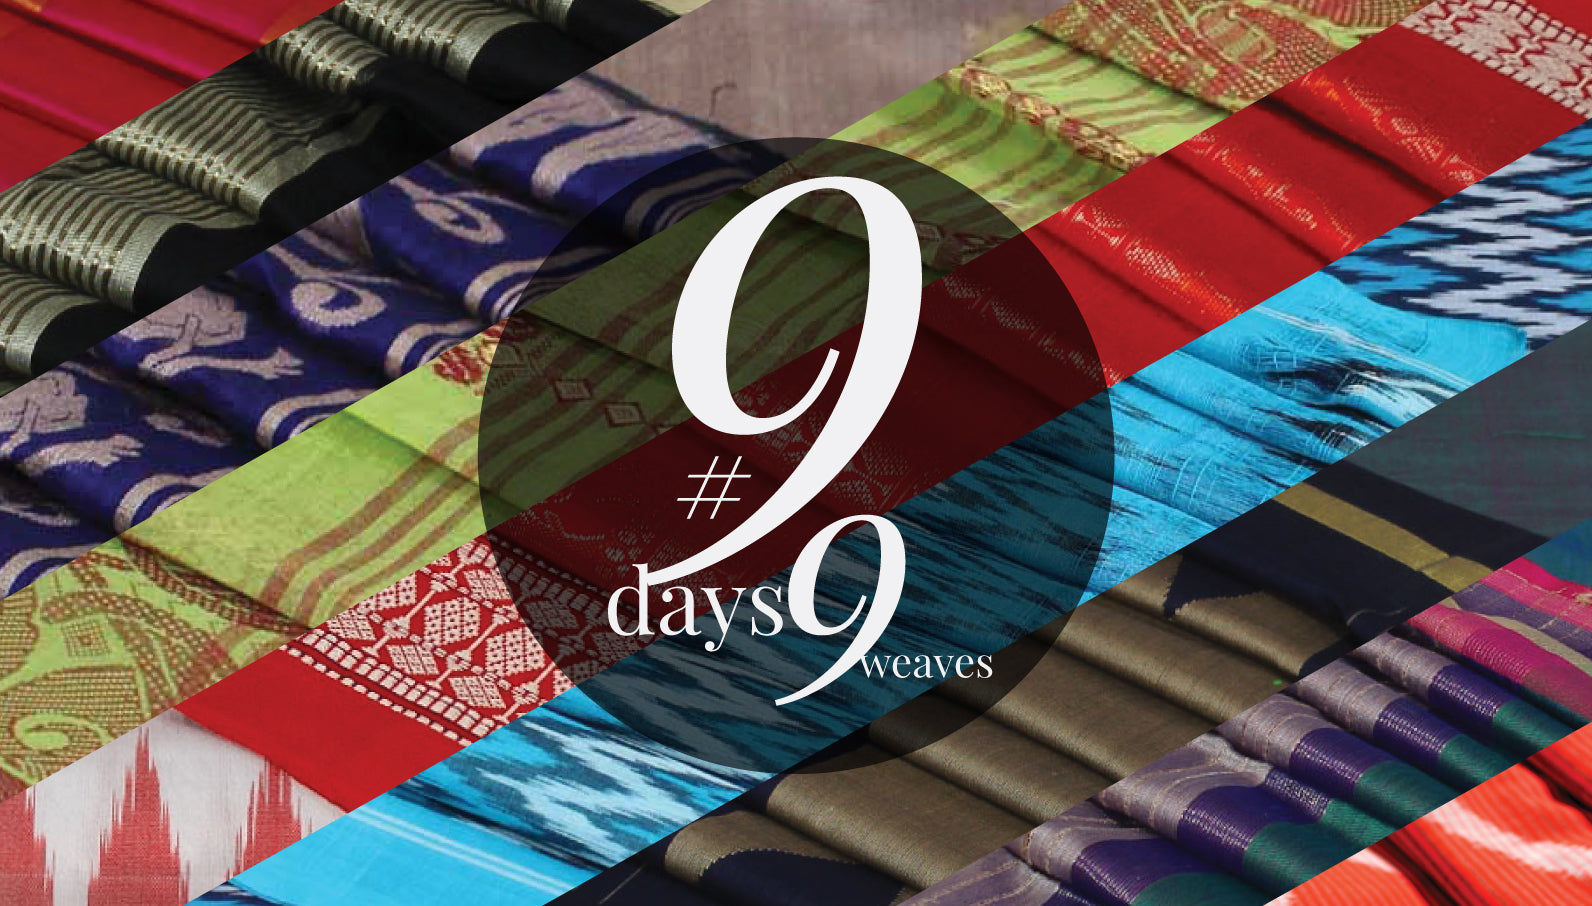 9 days 9 weaves - Stories behind the Sarees